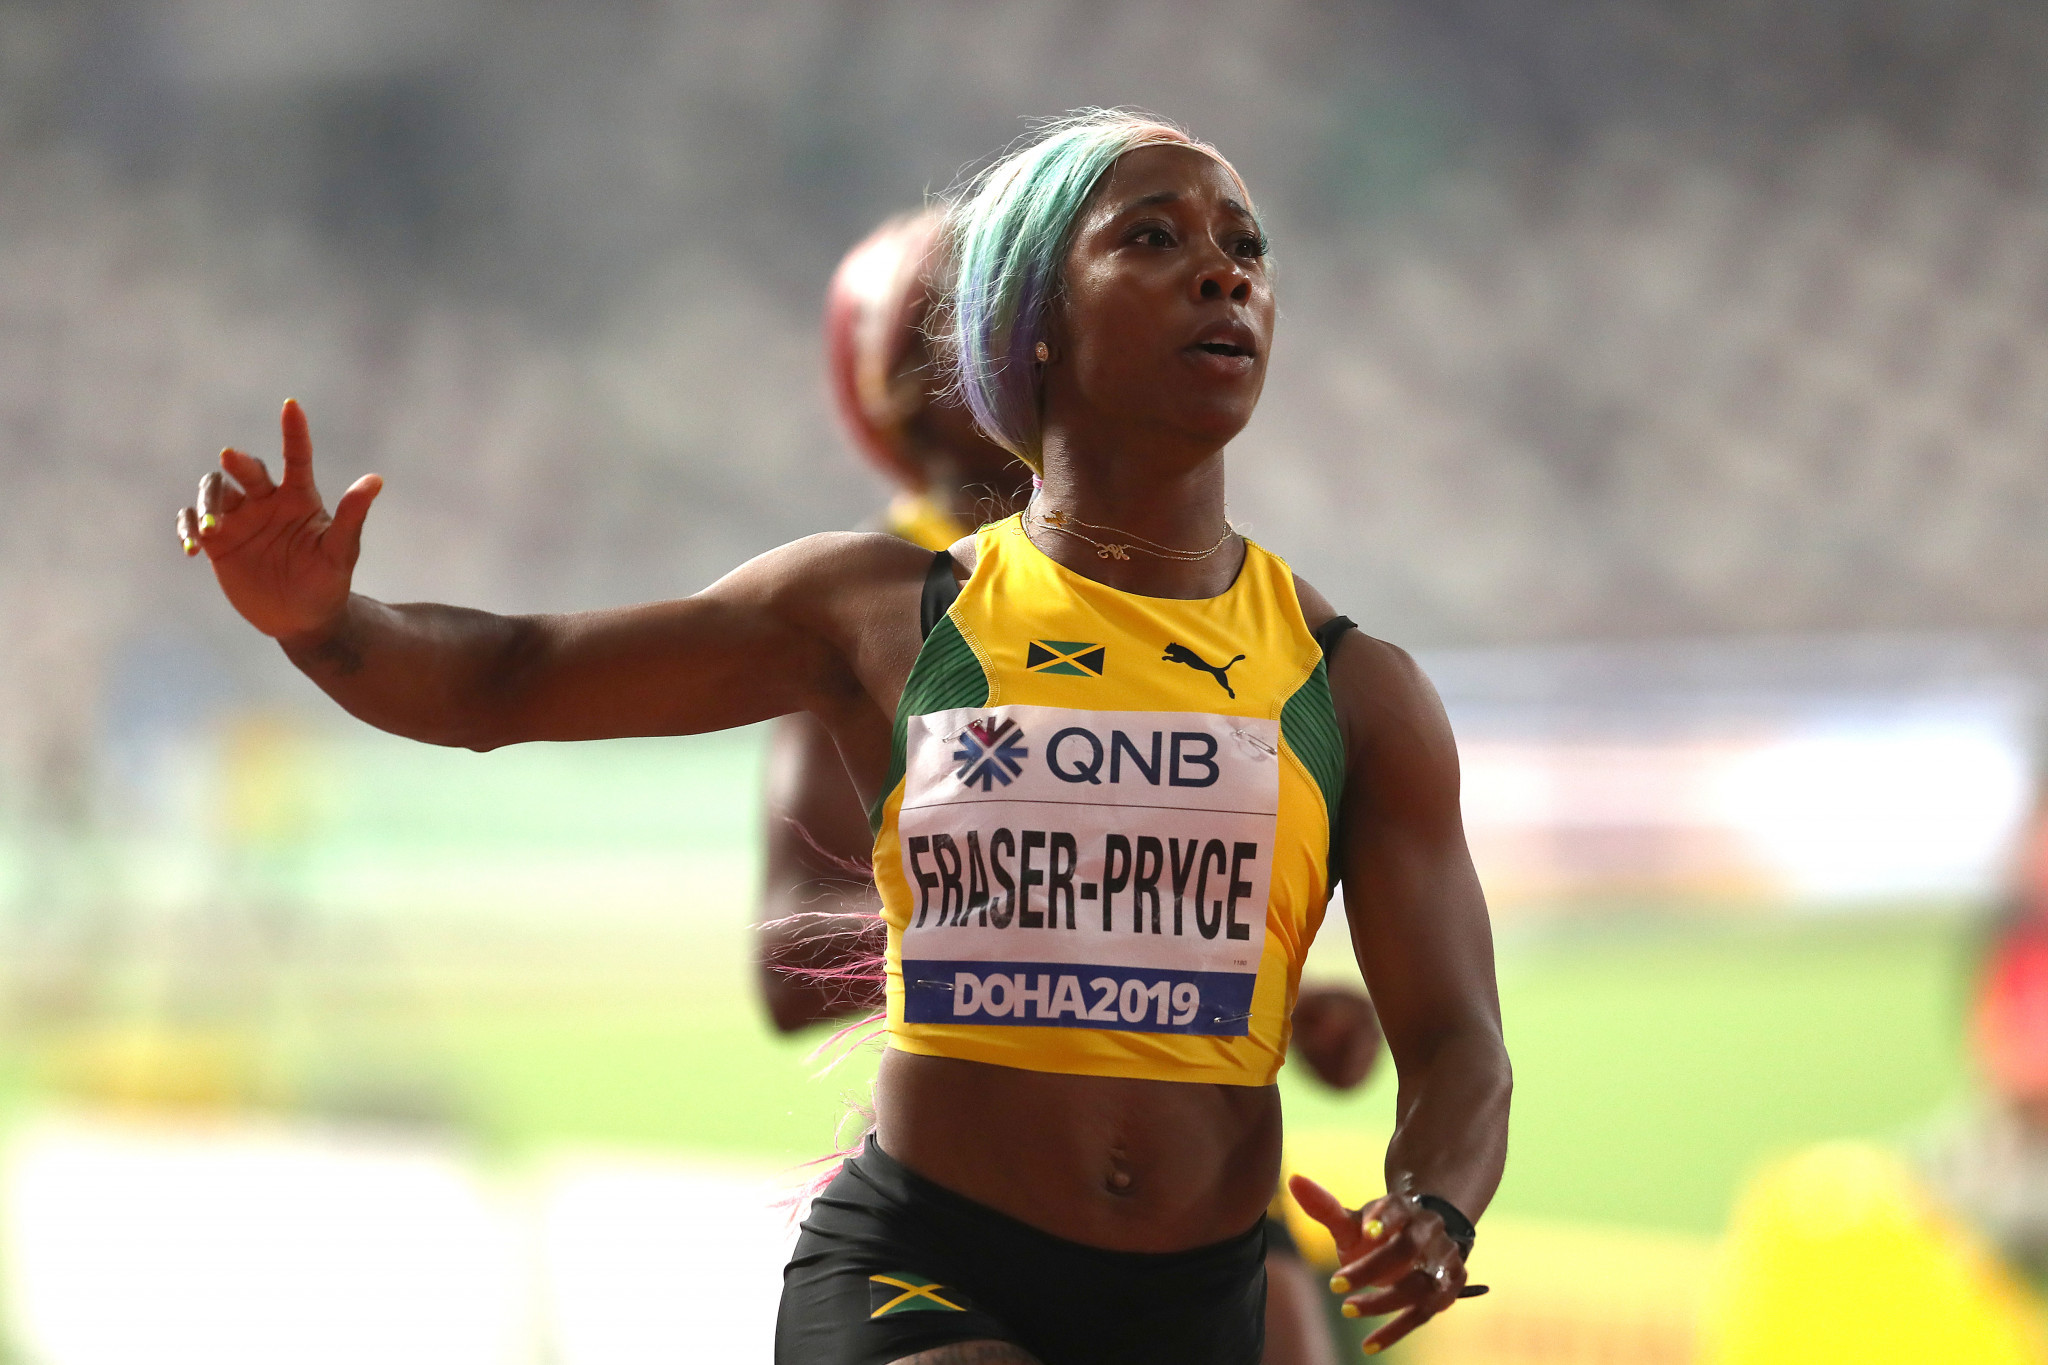 Jamaica's world 100m champion Shelly-Ann Fraser-Pryce plans to seek to double at 100 and 200 metres at Tokyo 2020, she has revealed ©Getty Images